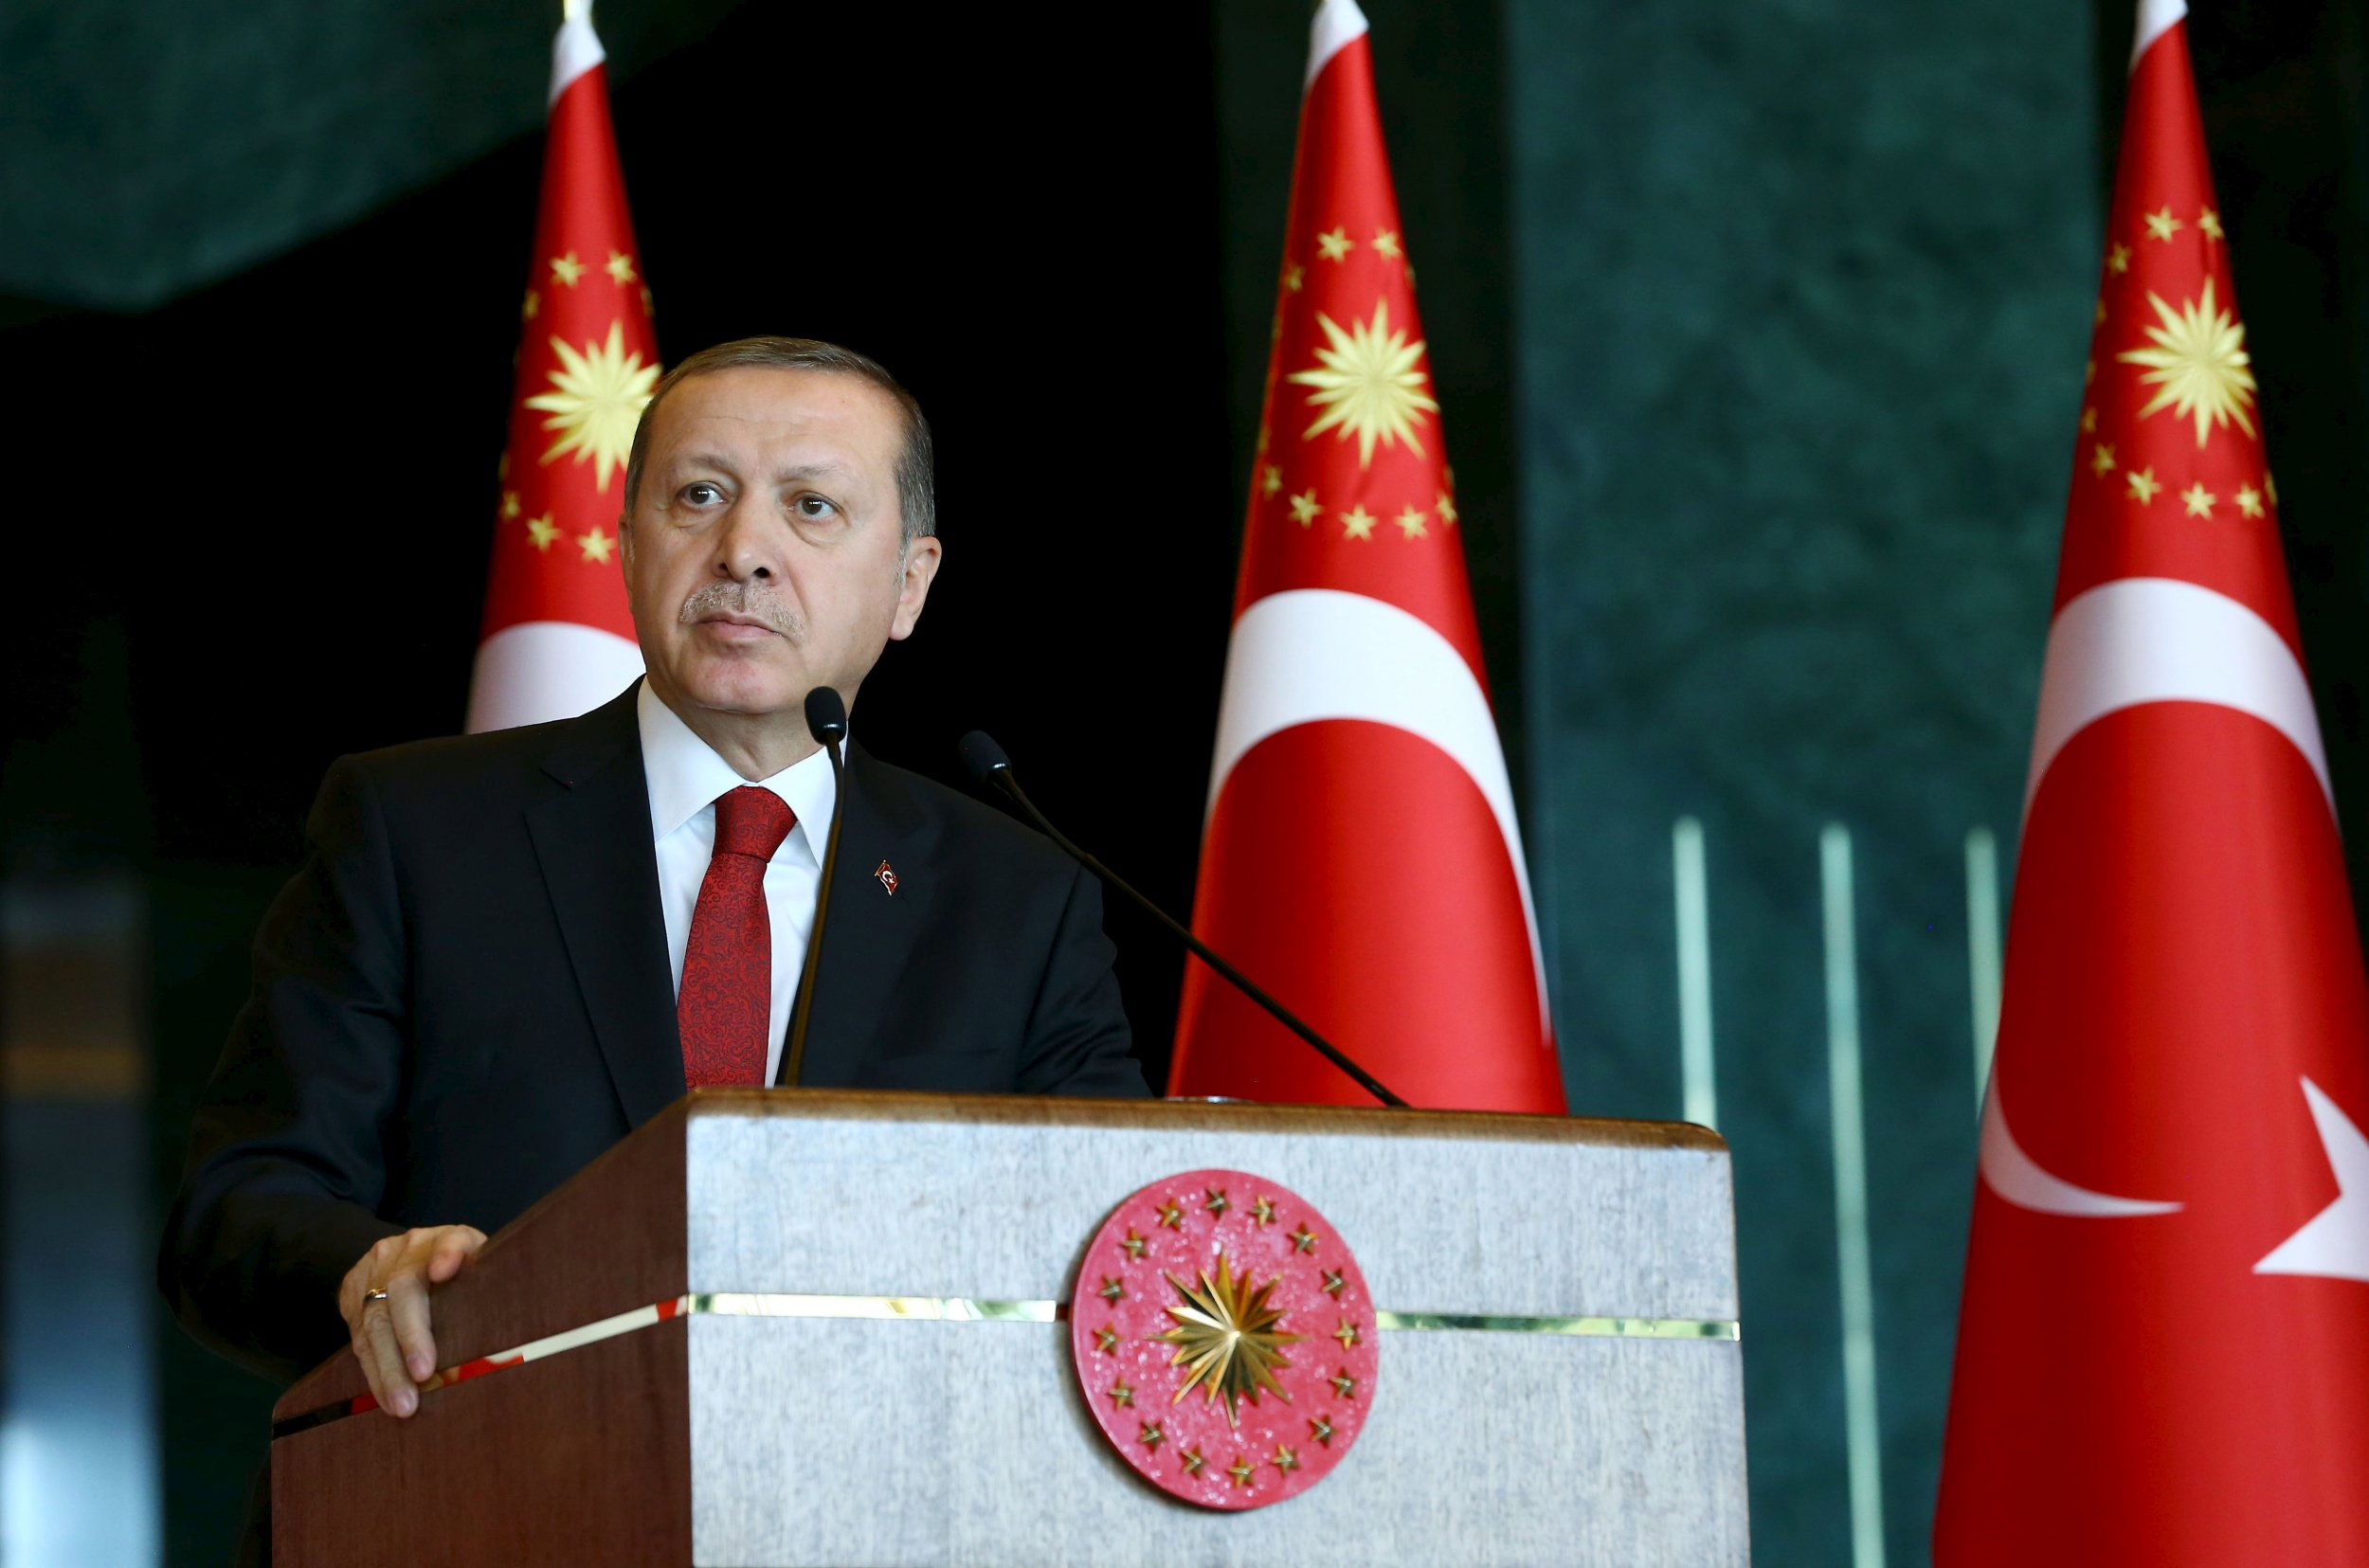 Erdogan addresses an audience in Ankara